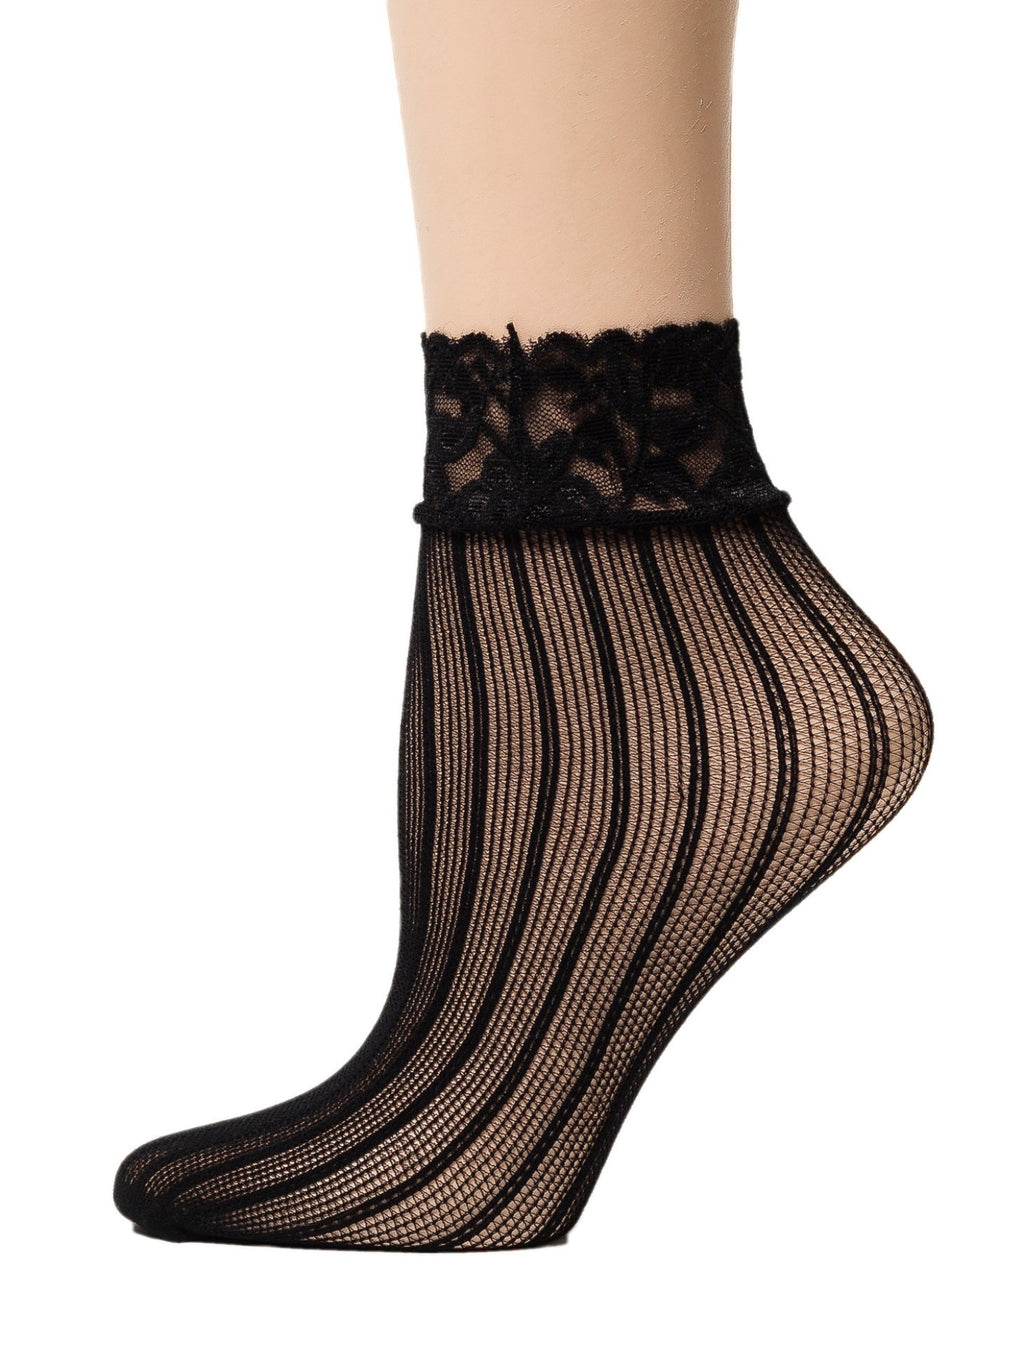 Lateral Black Mesh Socks - Global Trendz Fashion®